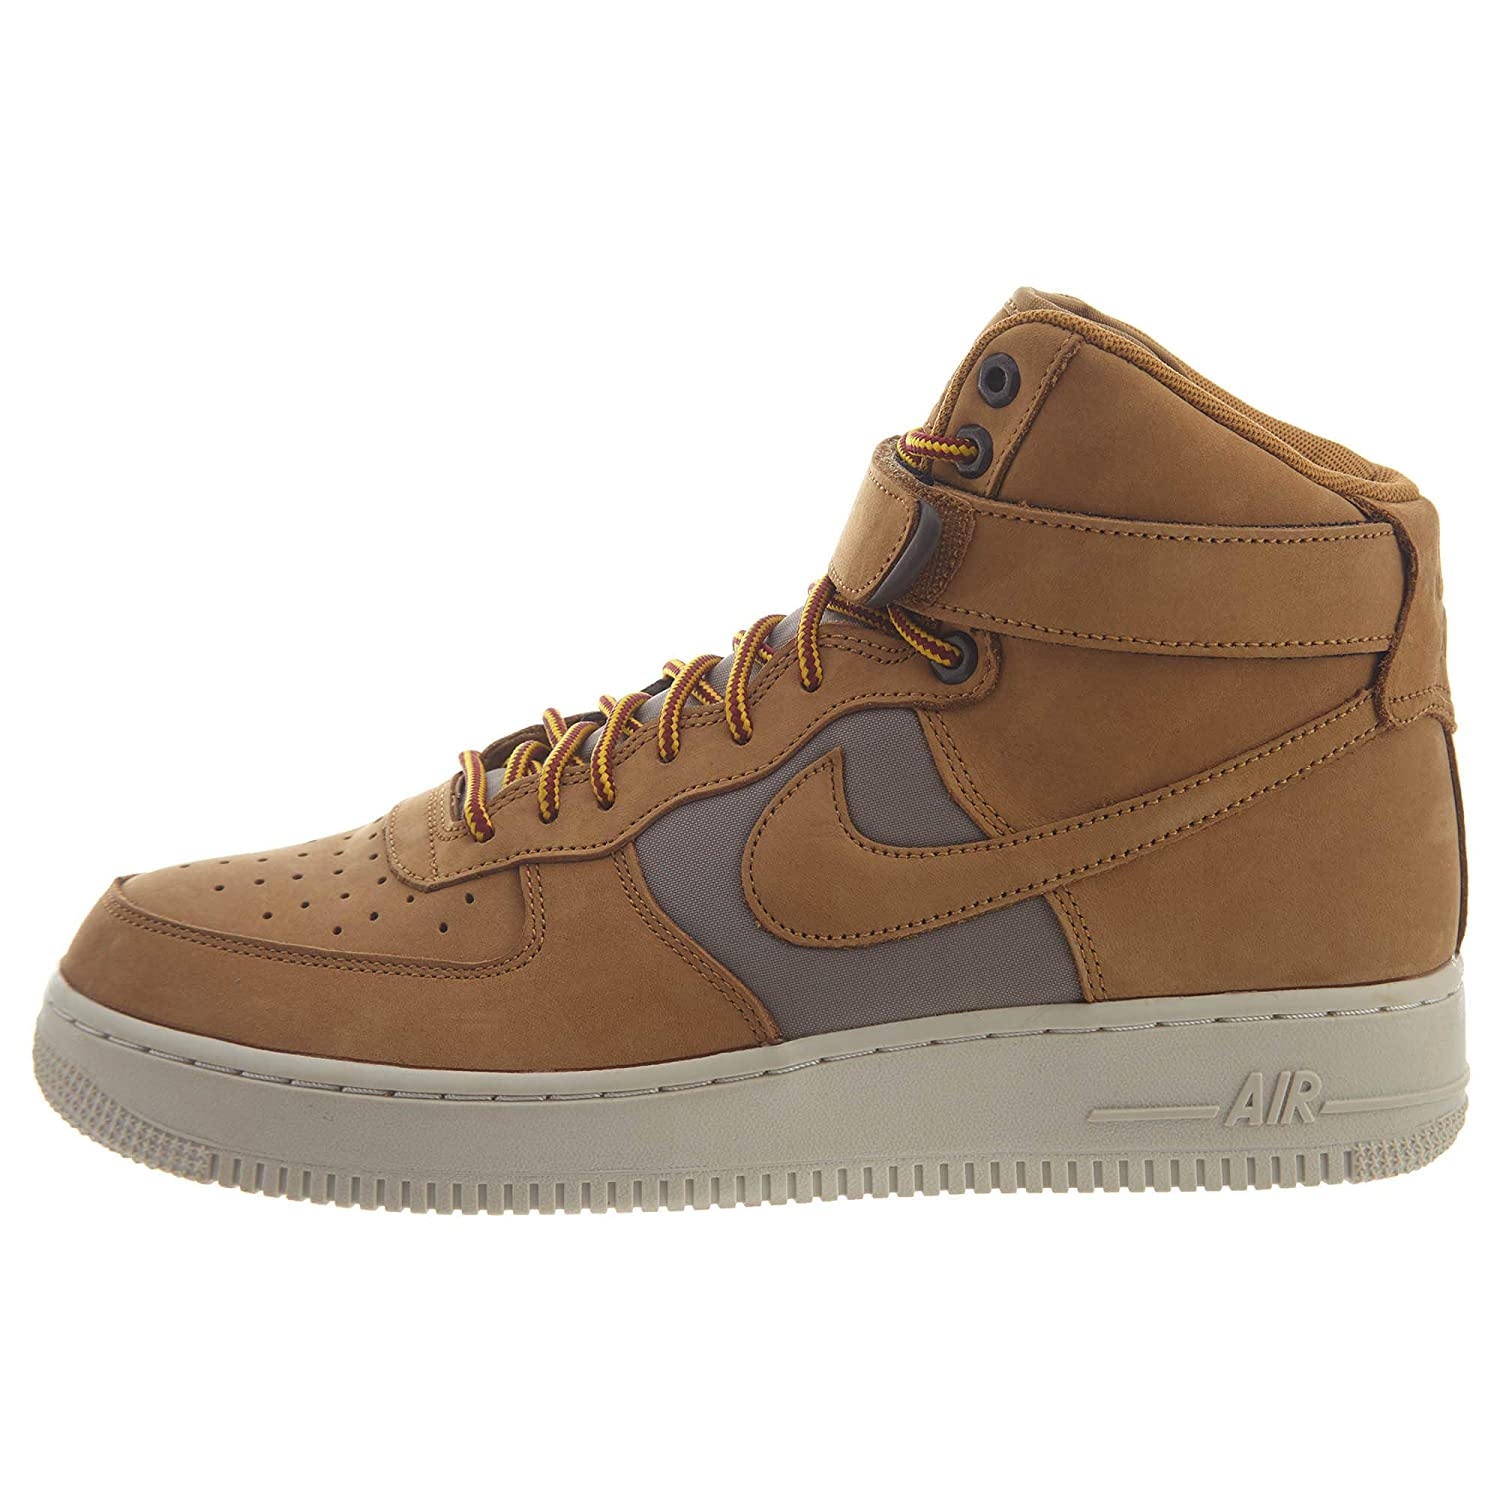 Nike Men's Air Force 1 High Leather Casual Shoes